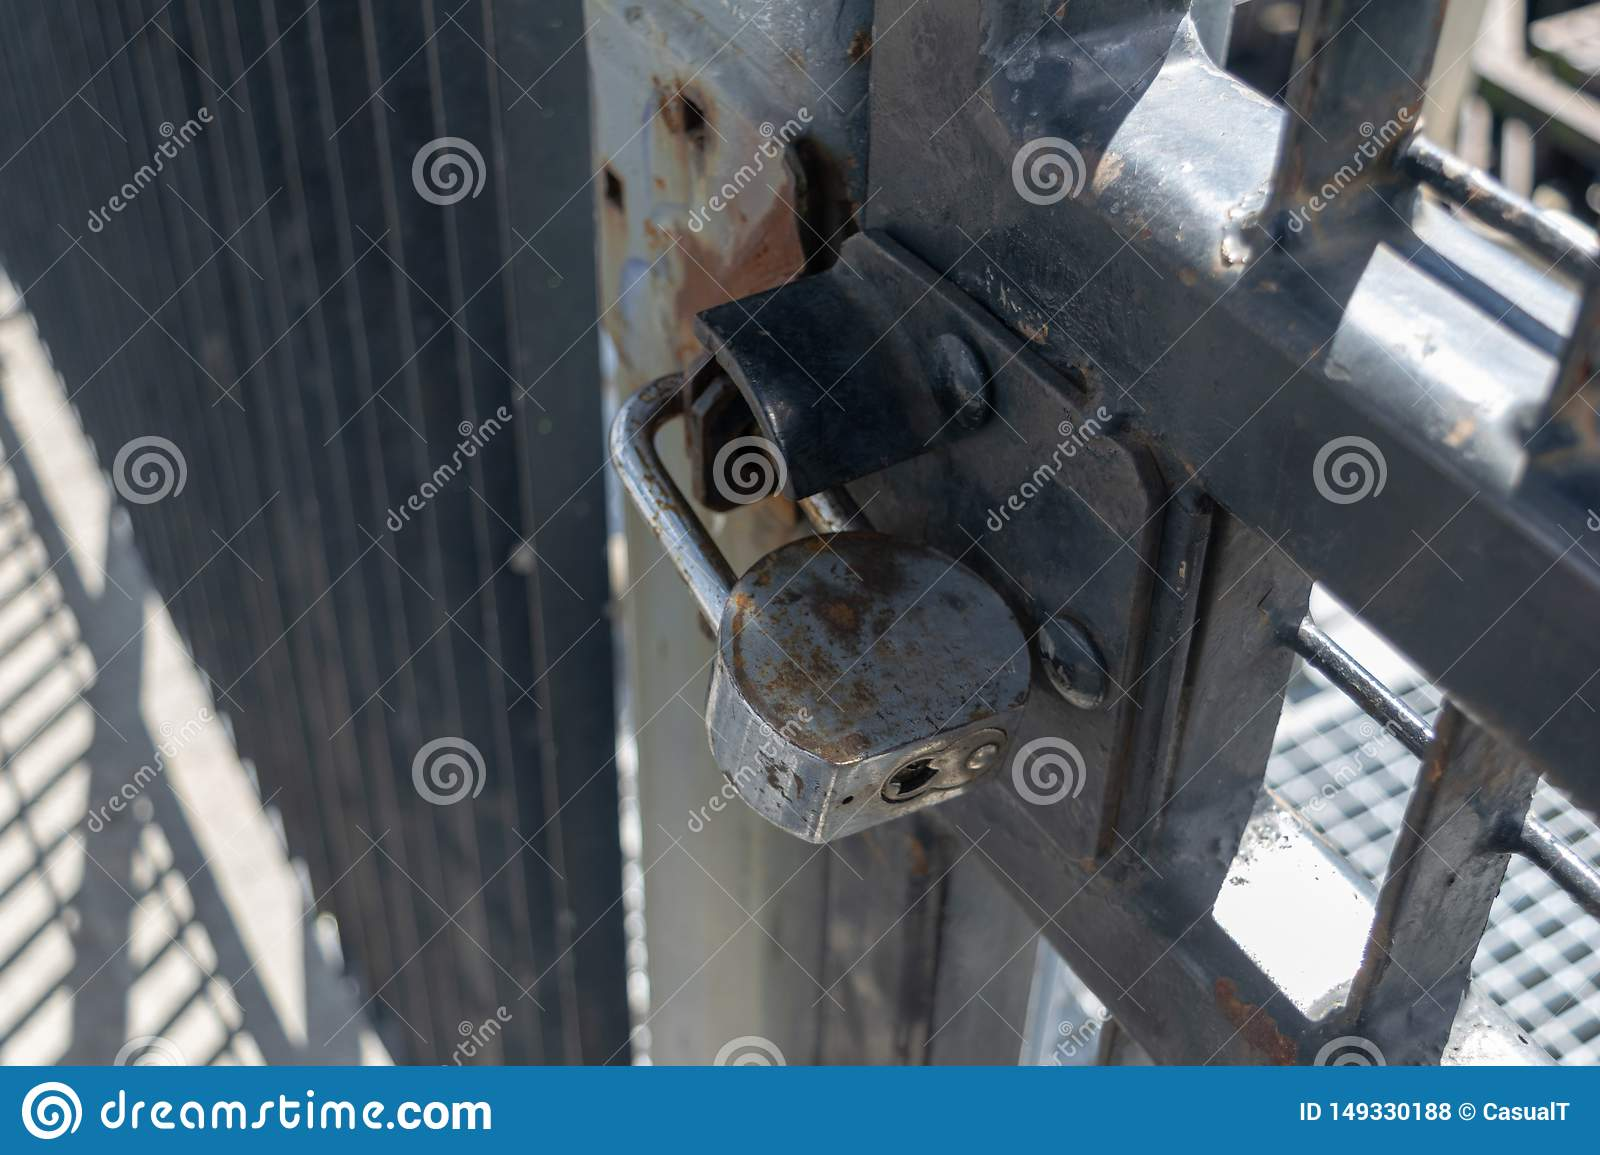 Old and rusty heavy duty pad lock securing aan iron gate, closeup